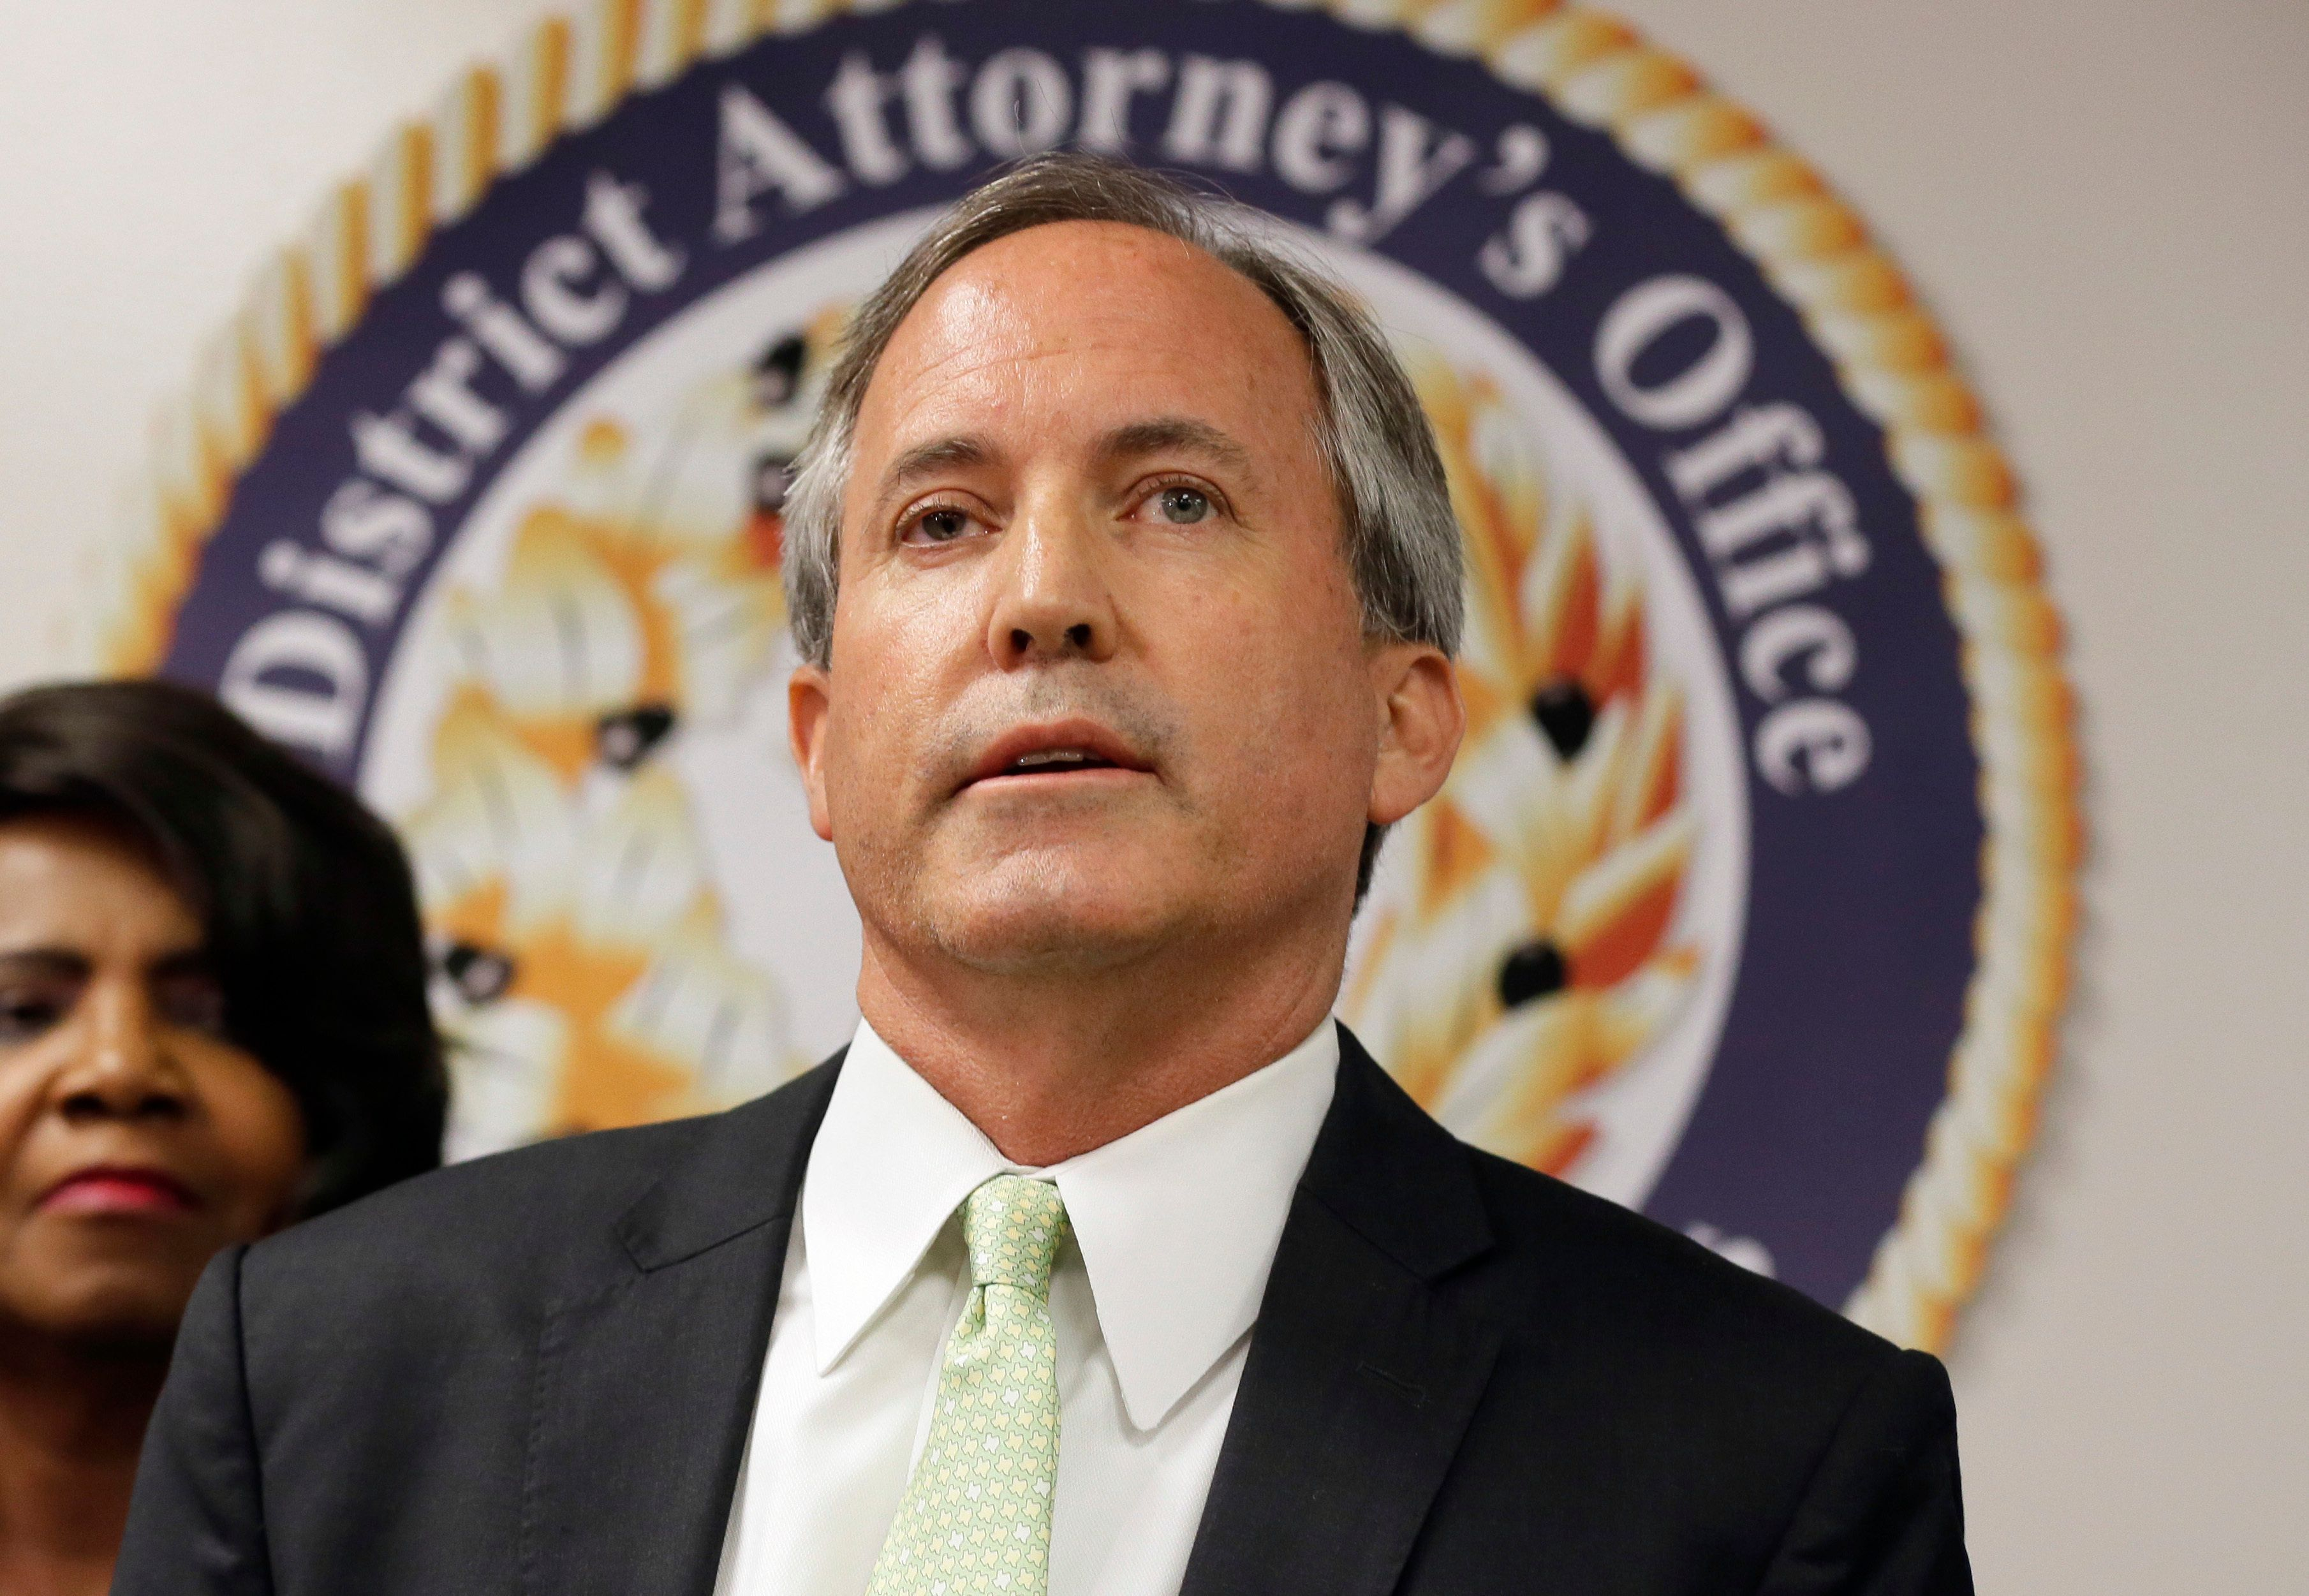 Paxton, seen in 2017, has denied wrongdoing and refused calls for his resignation.